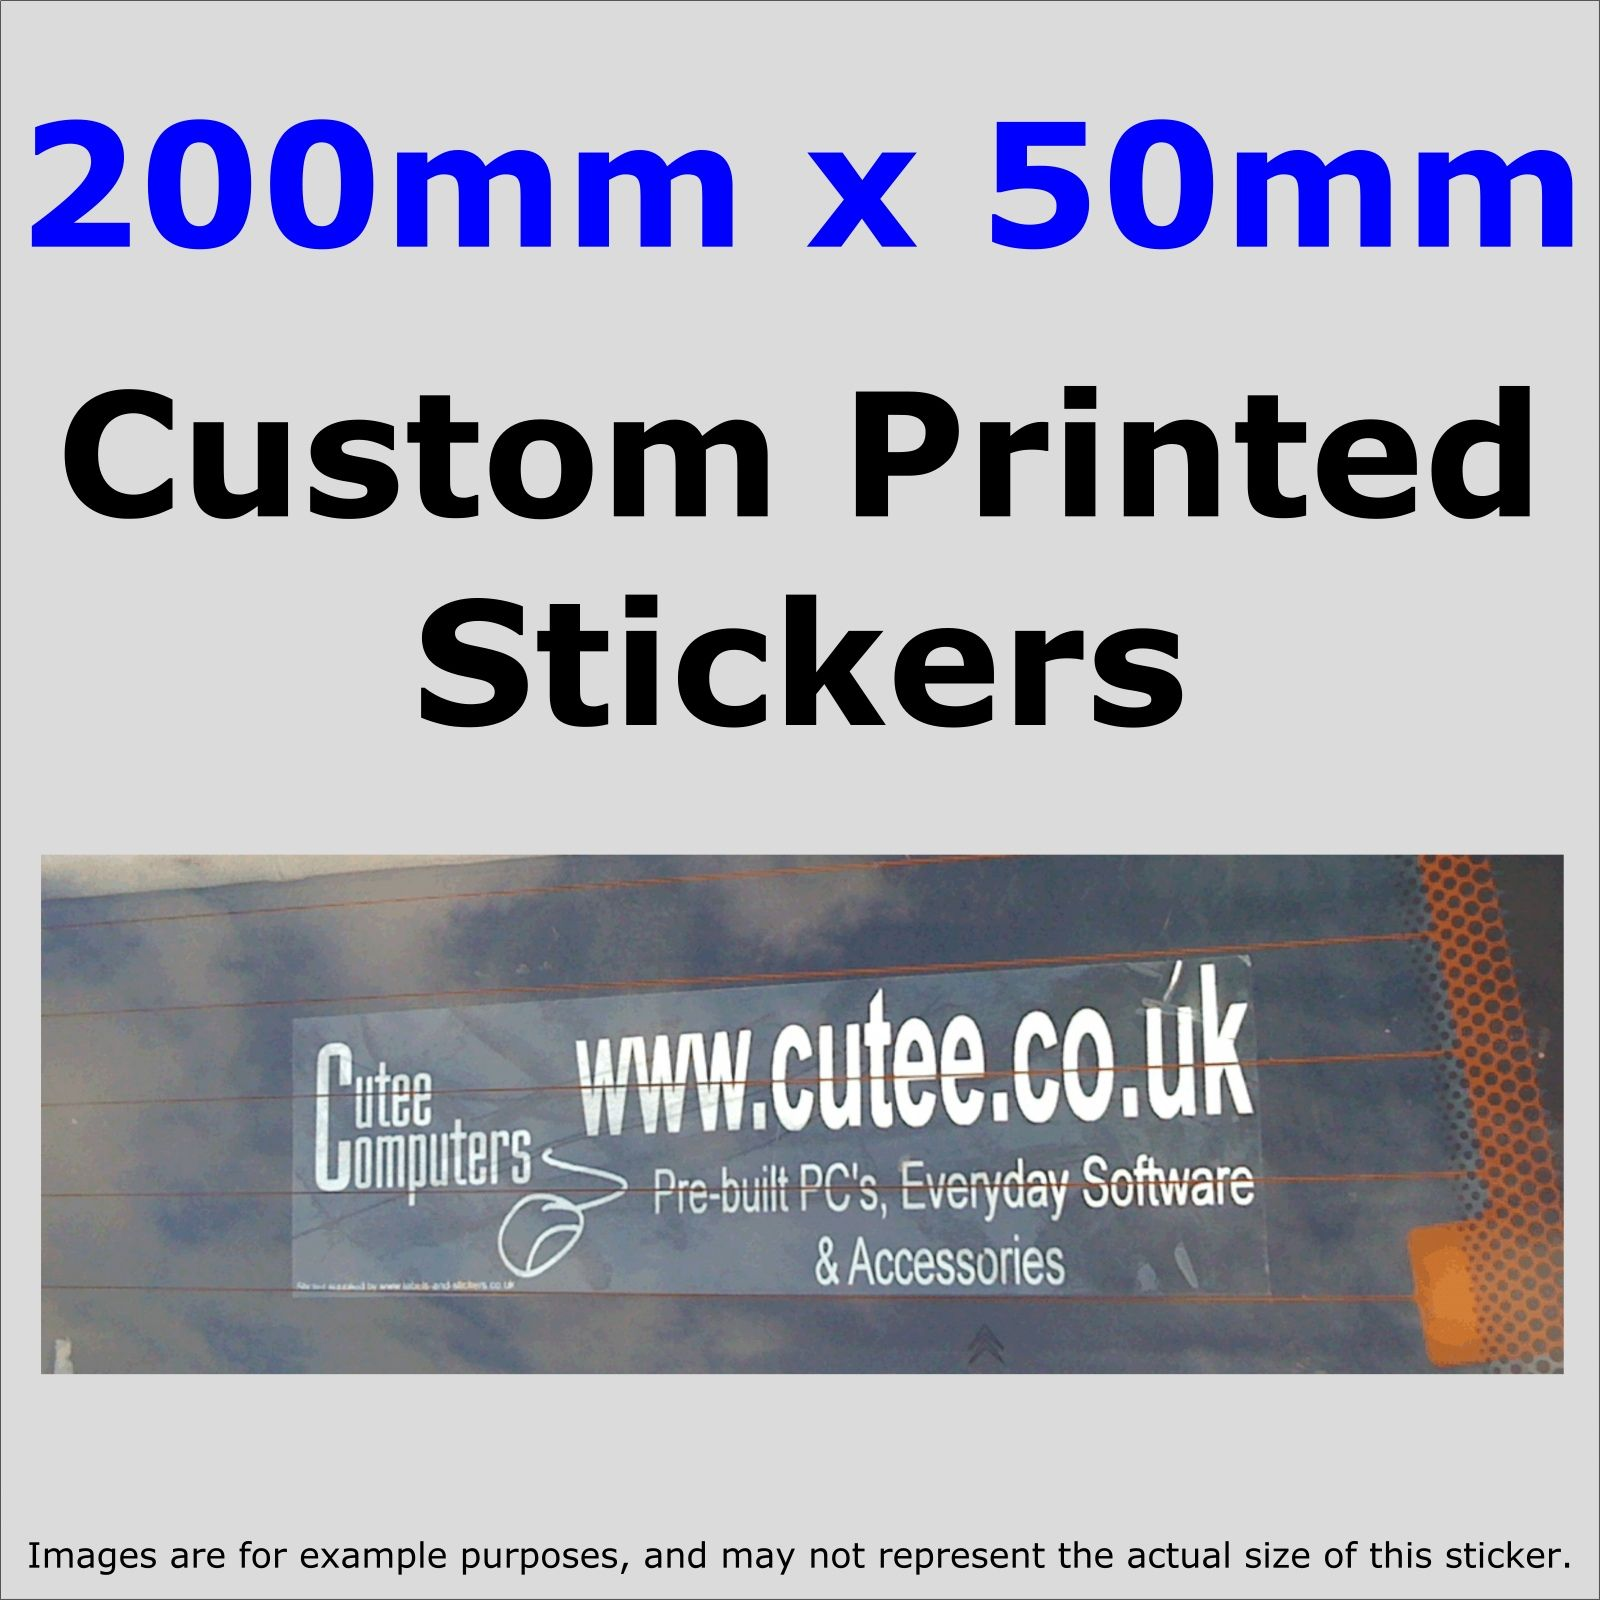 50mm x 200mm custom printed advertisingfun stickers windowsbumper cartaxivanbusinesswebsite